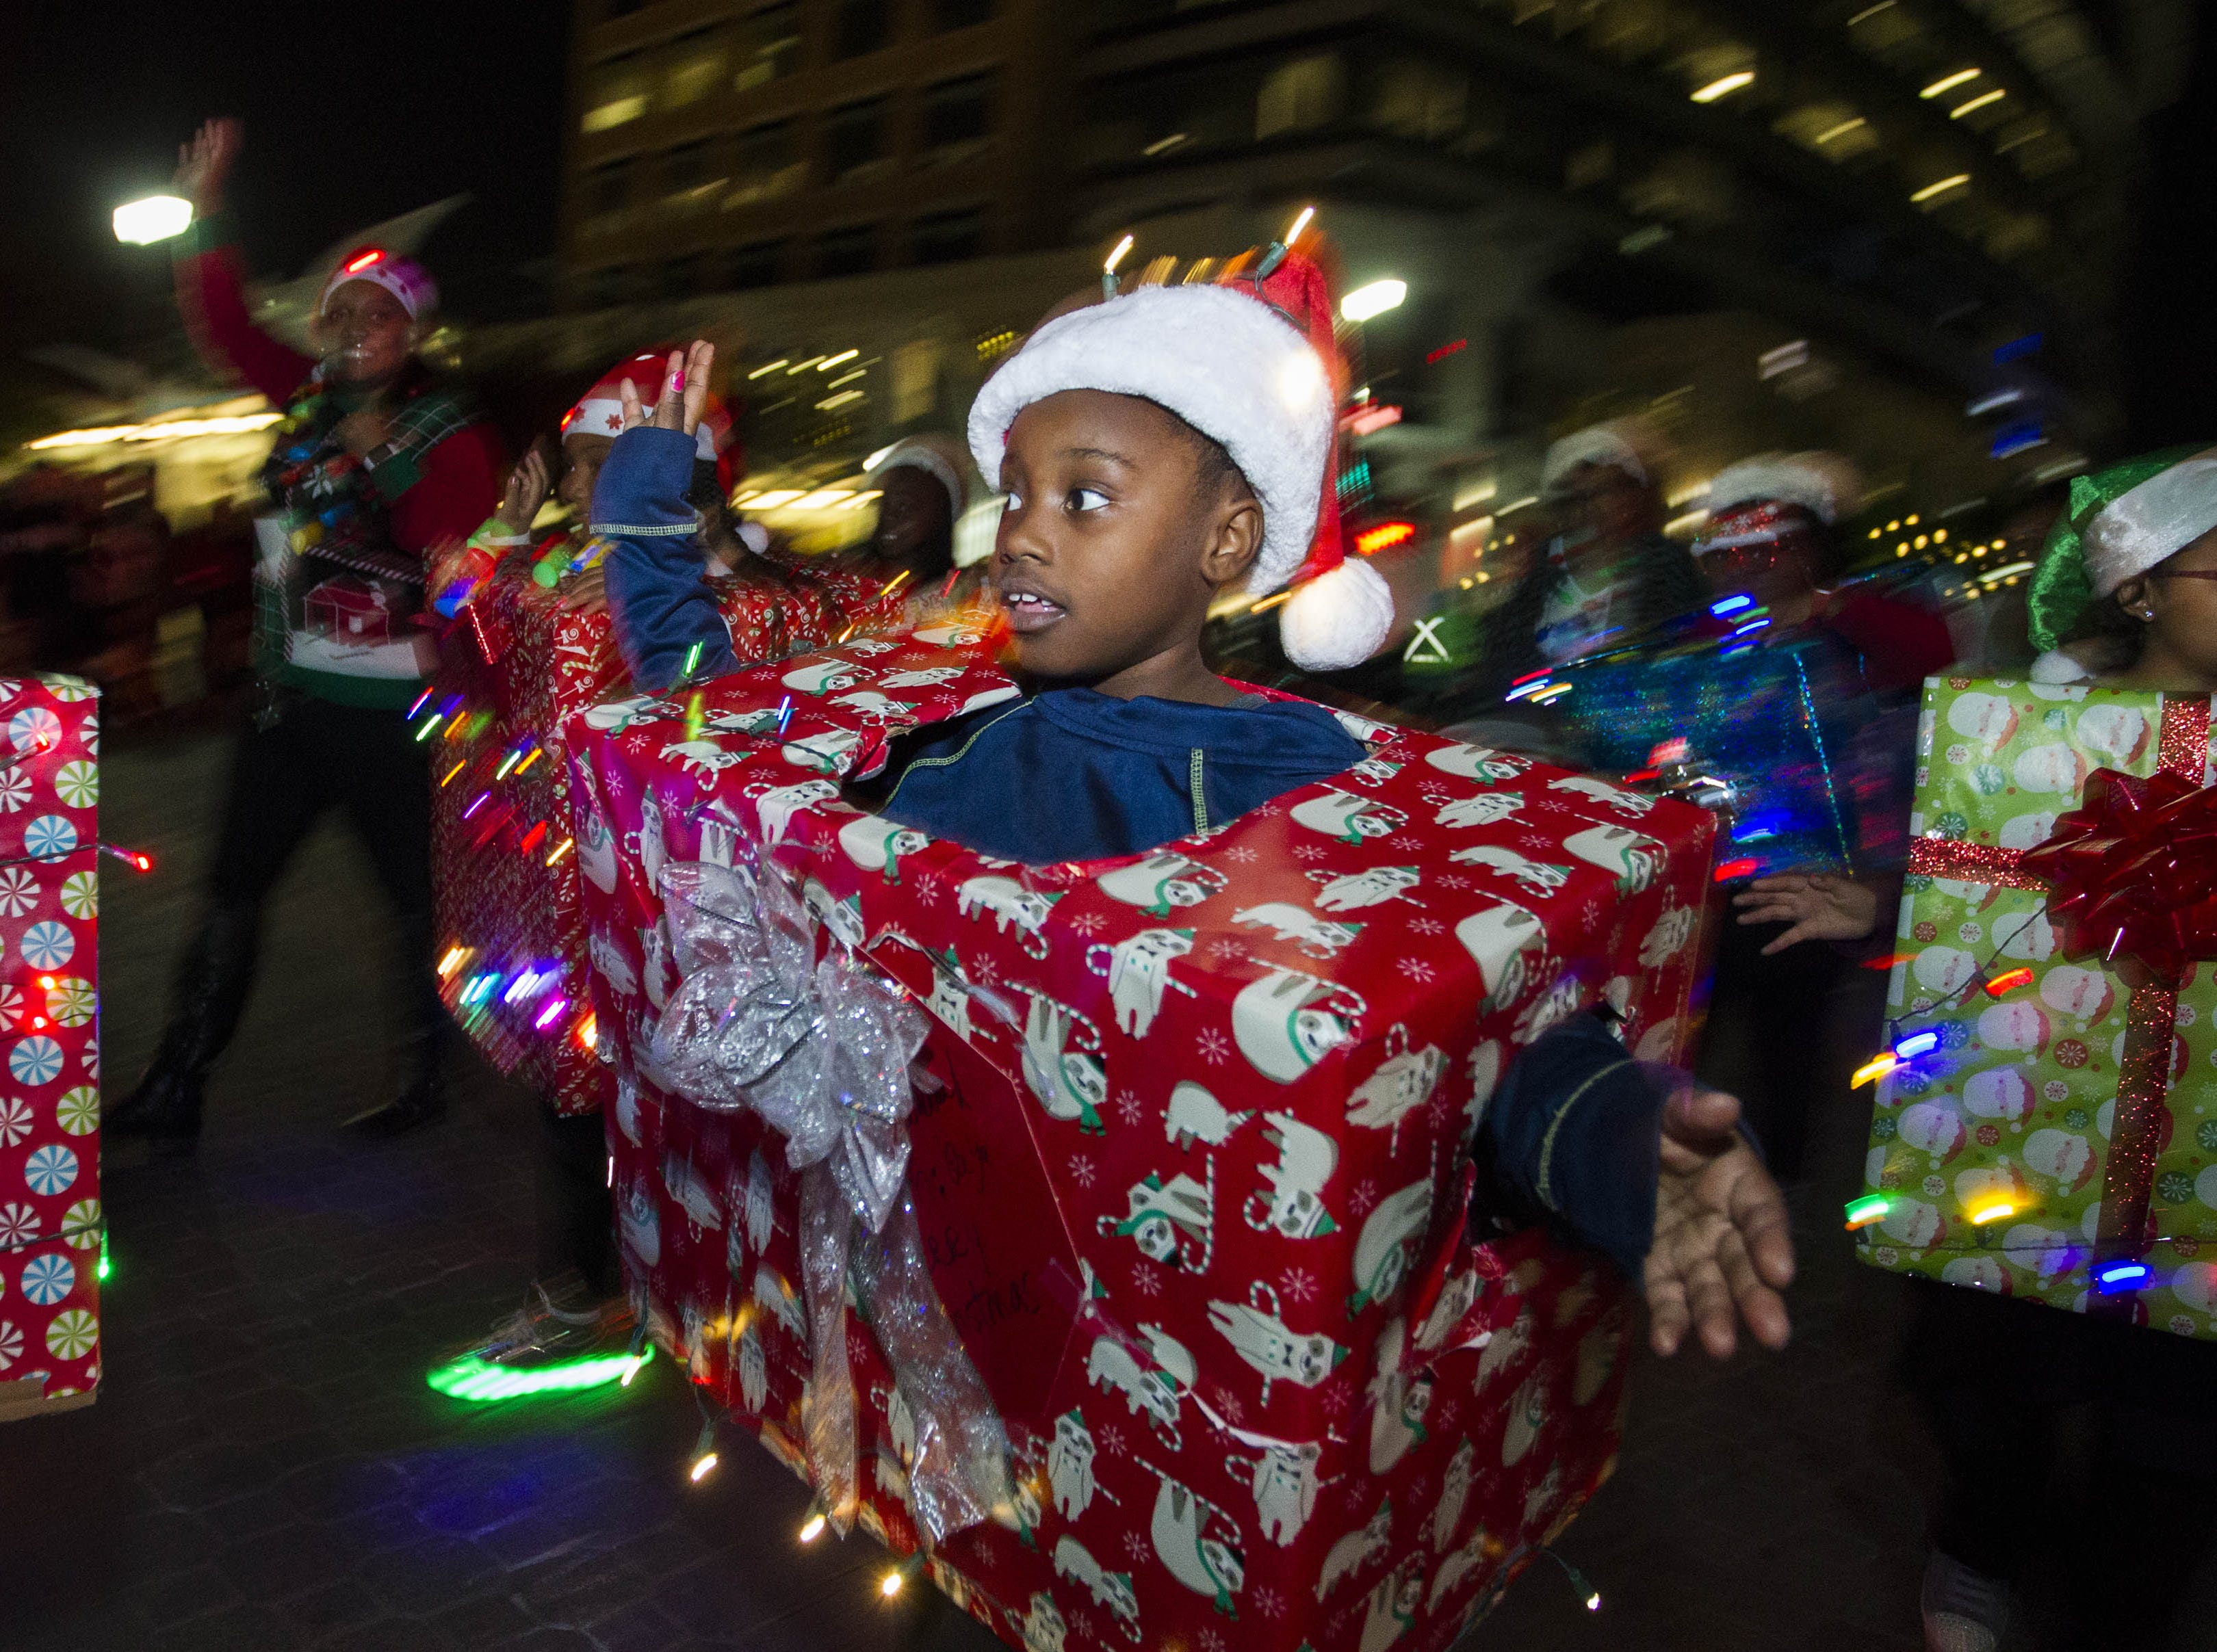 Little Light Parade participants have fun entertaining during the 2018 Fantasy of Lights Parade on Mill Ave. Friday, Nov. 23, 2018.